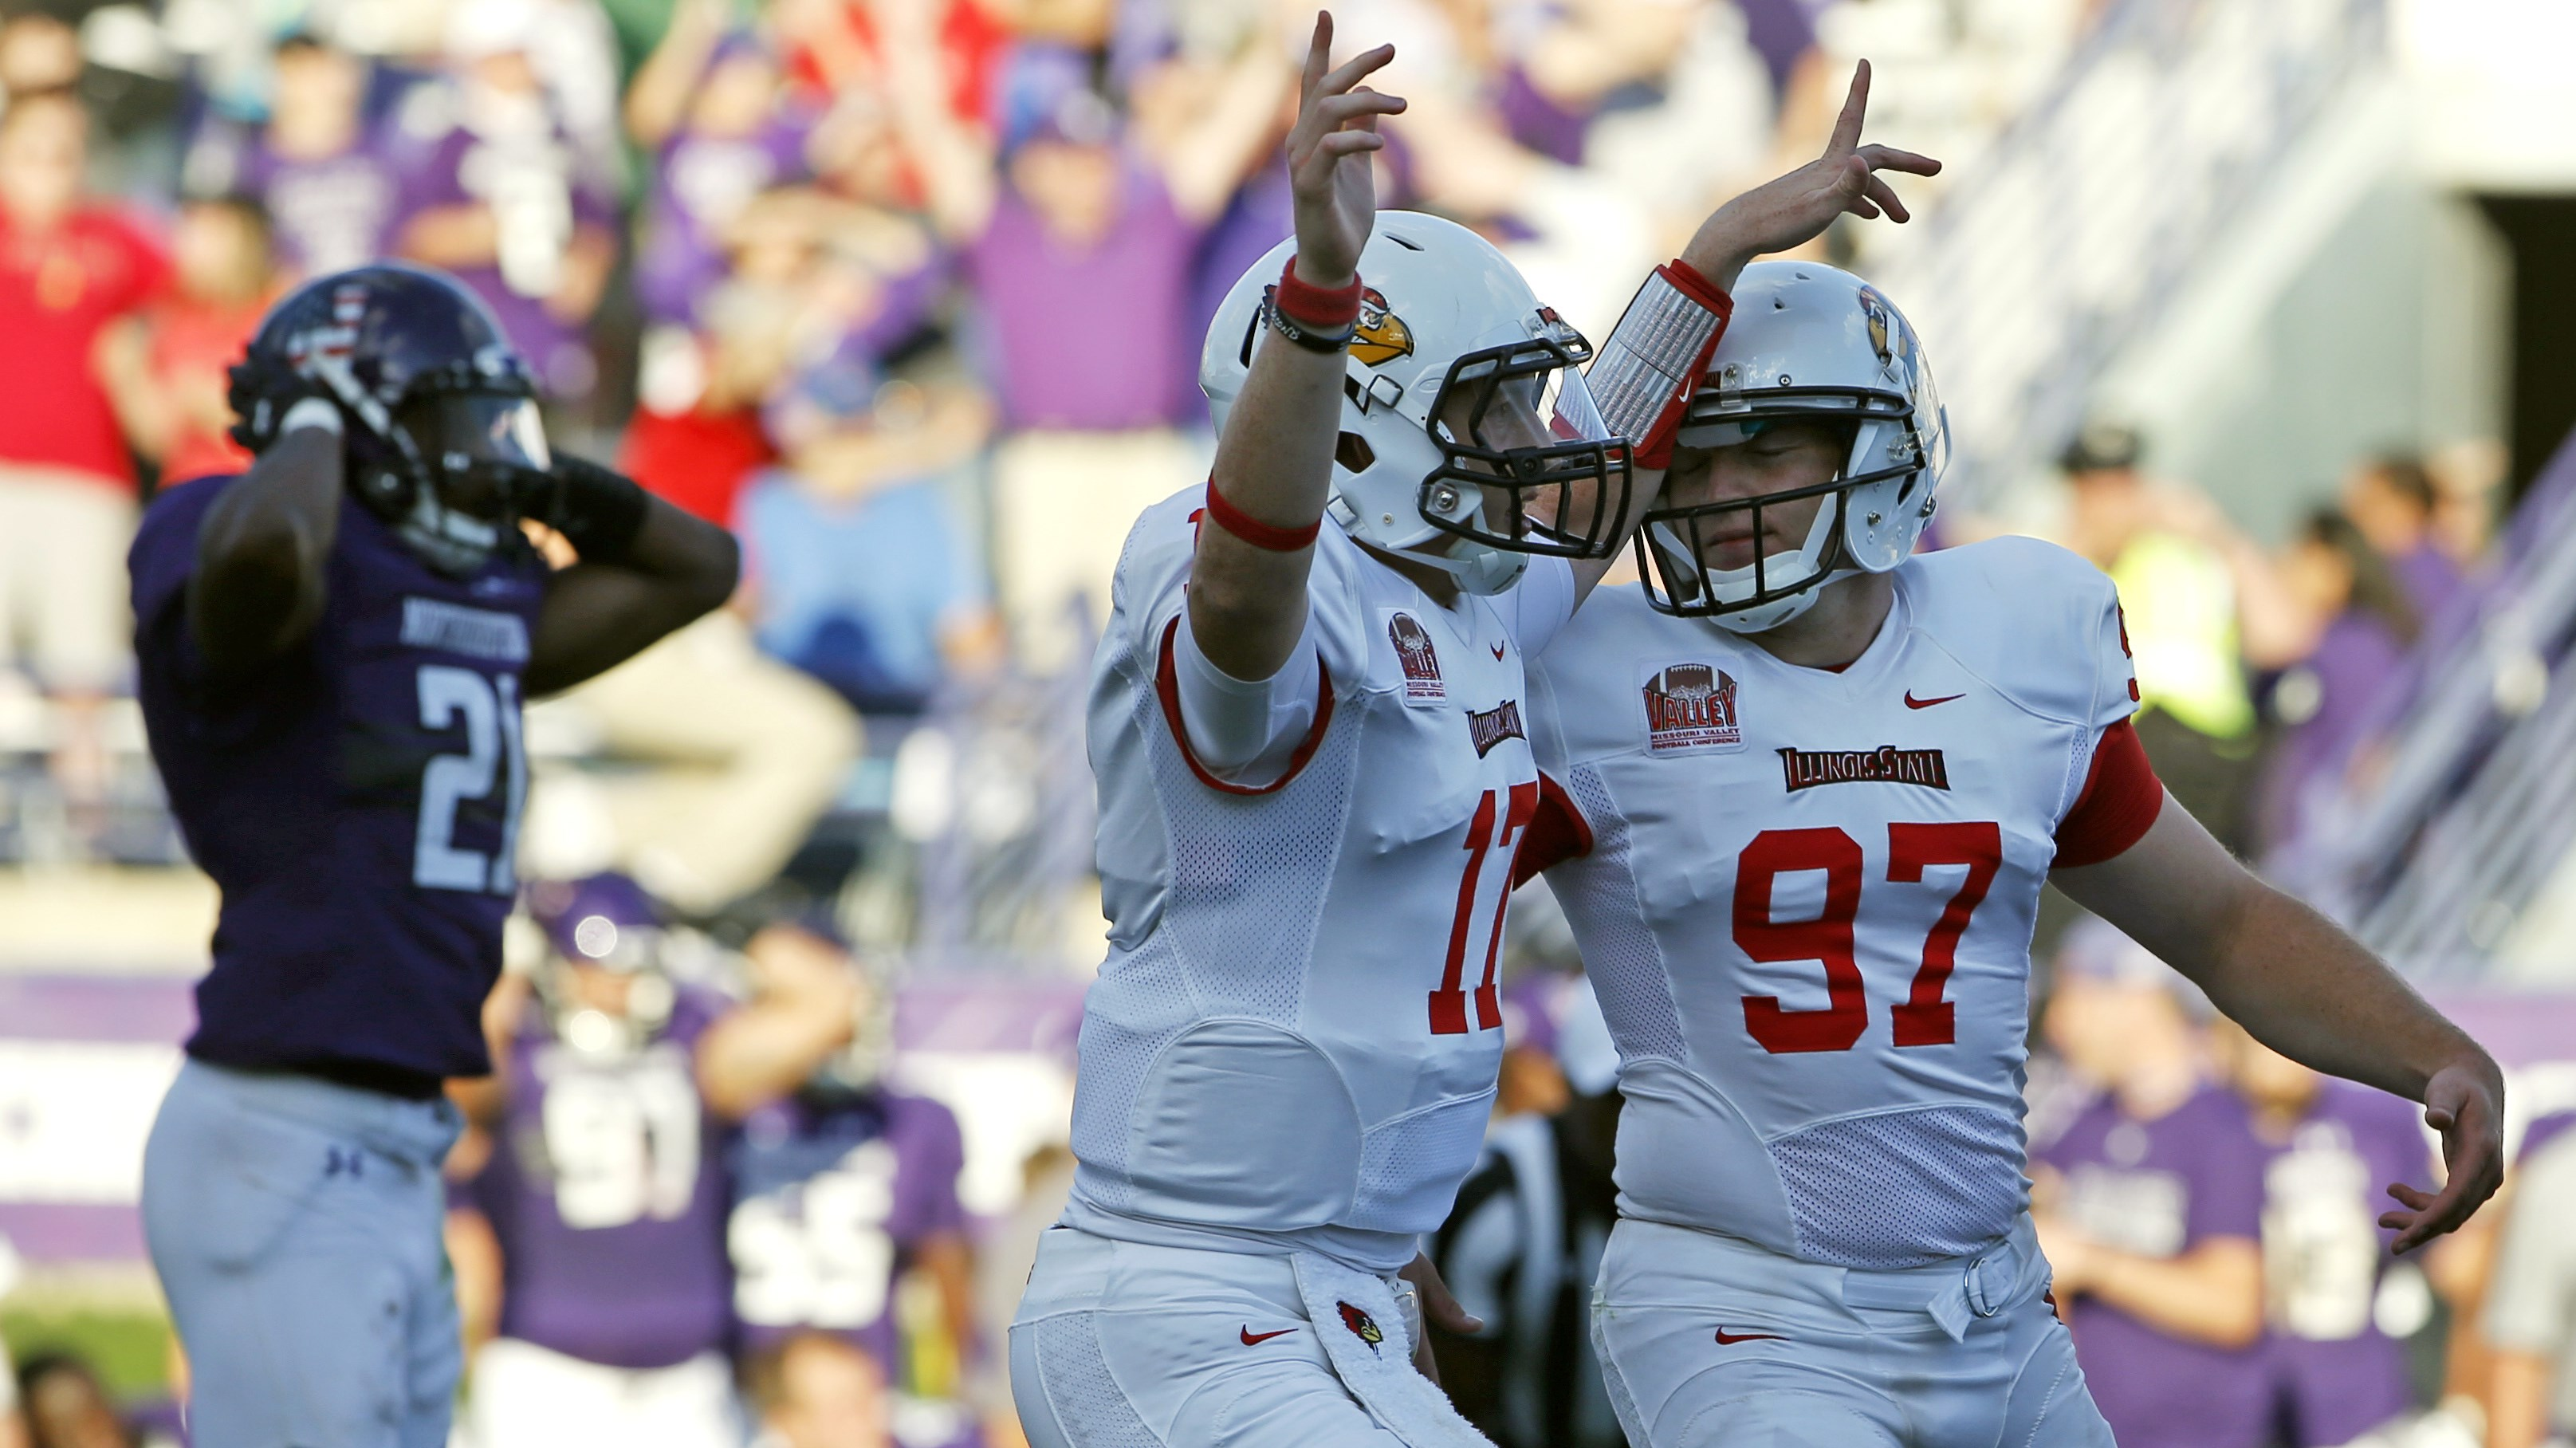 Illinois State kicker Sean Slattery (97) celebrates with quarterback Koty Thelen (17) after scoring the game-winning field goal as Northwestern running back Justin Jackson, left, reacts during the second half of an NCAA college football game in Evanston,